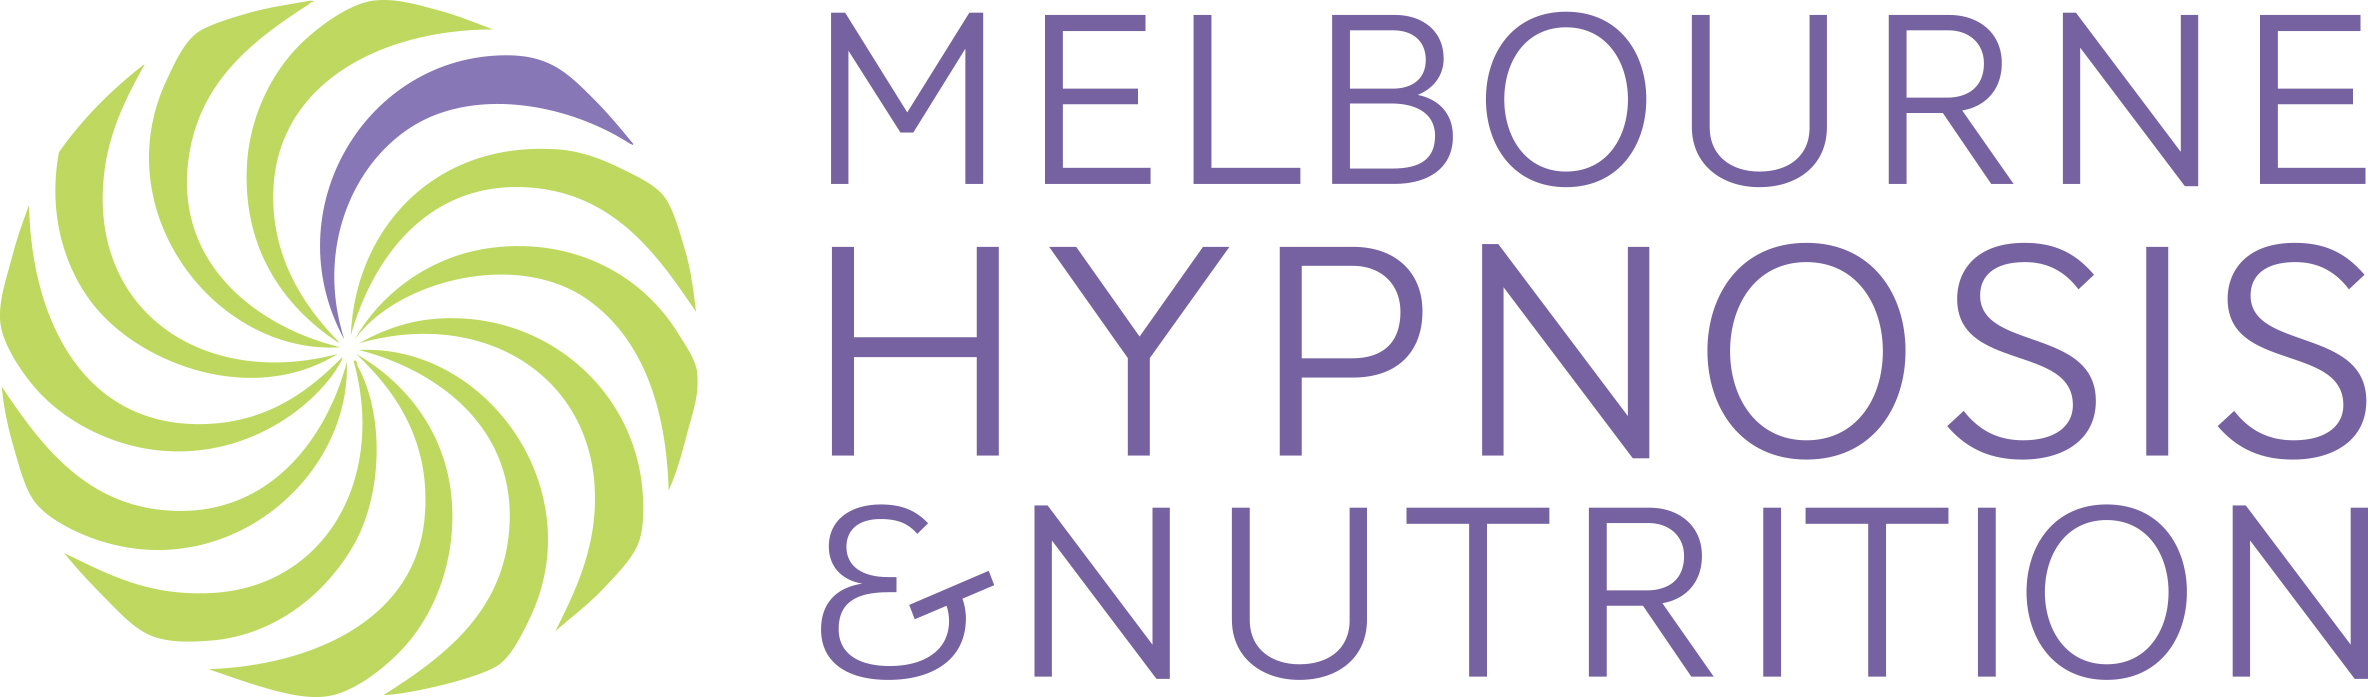 Melbourne Hypnosis & Nutrition